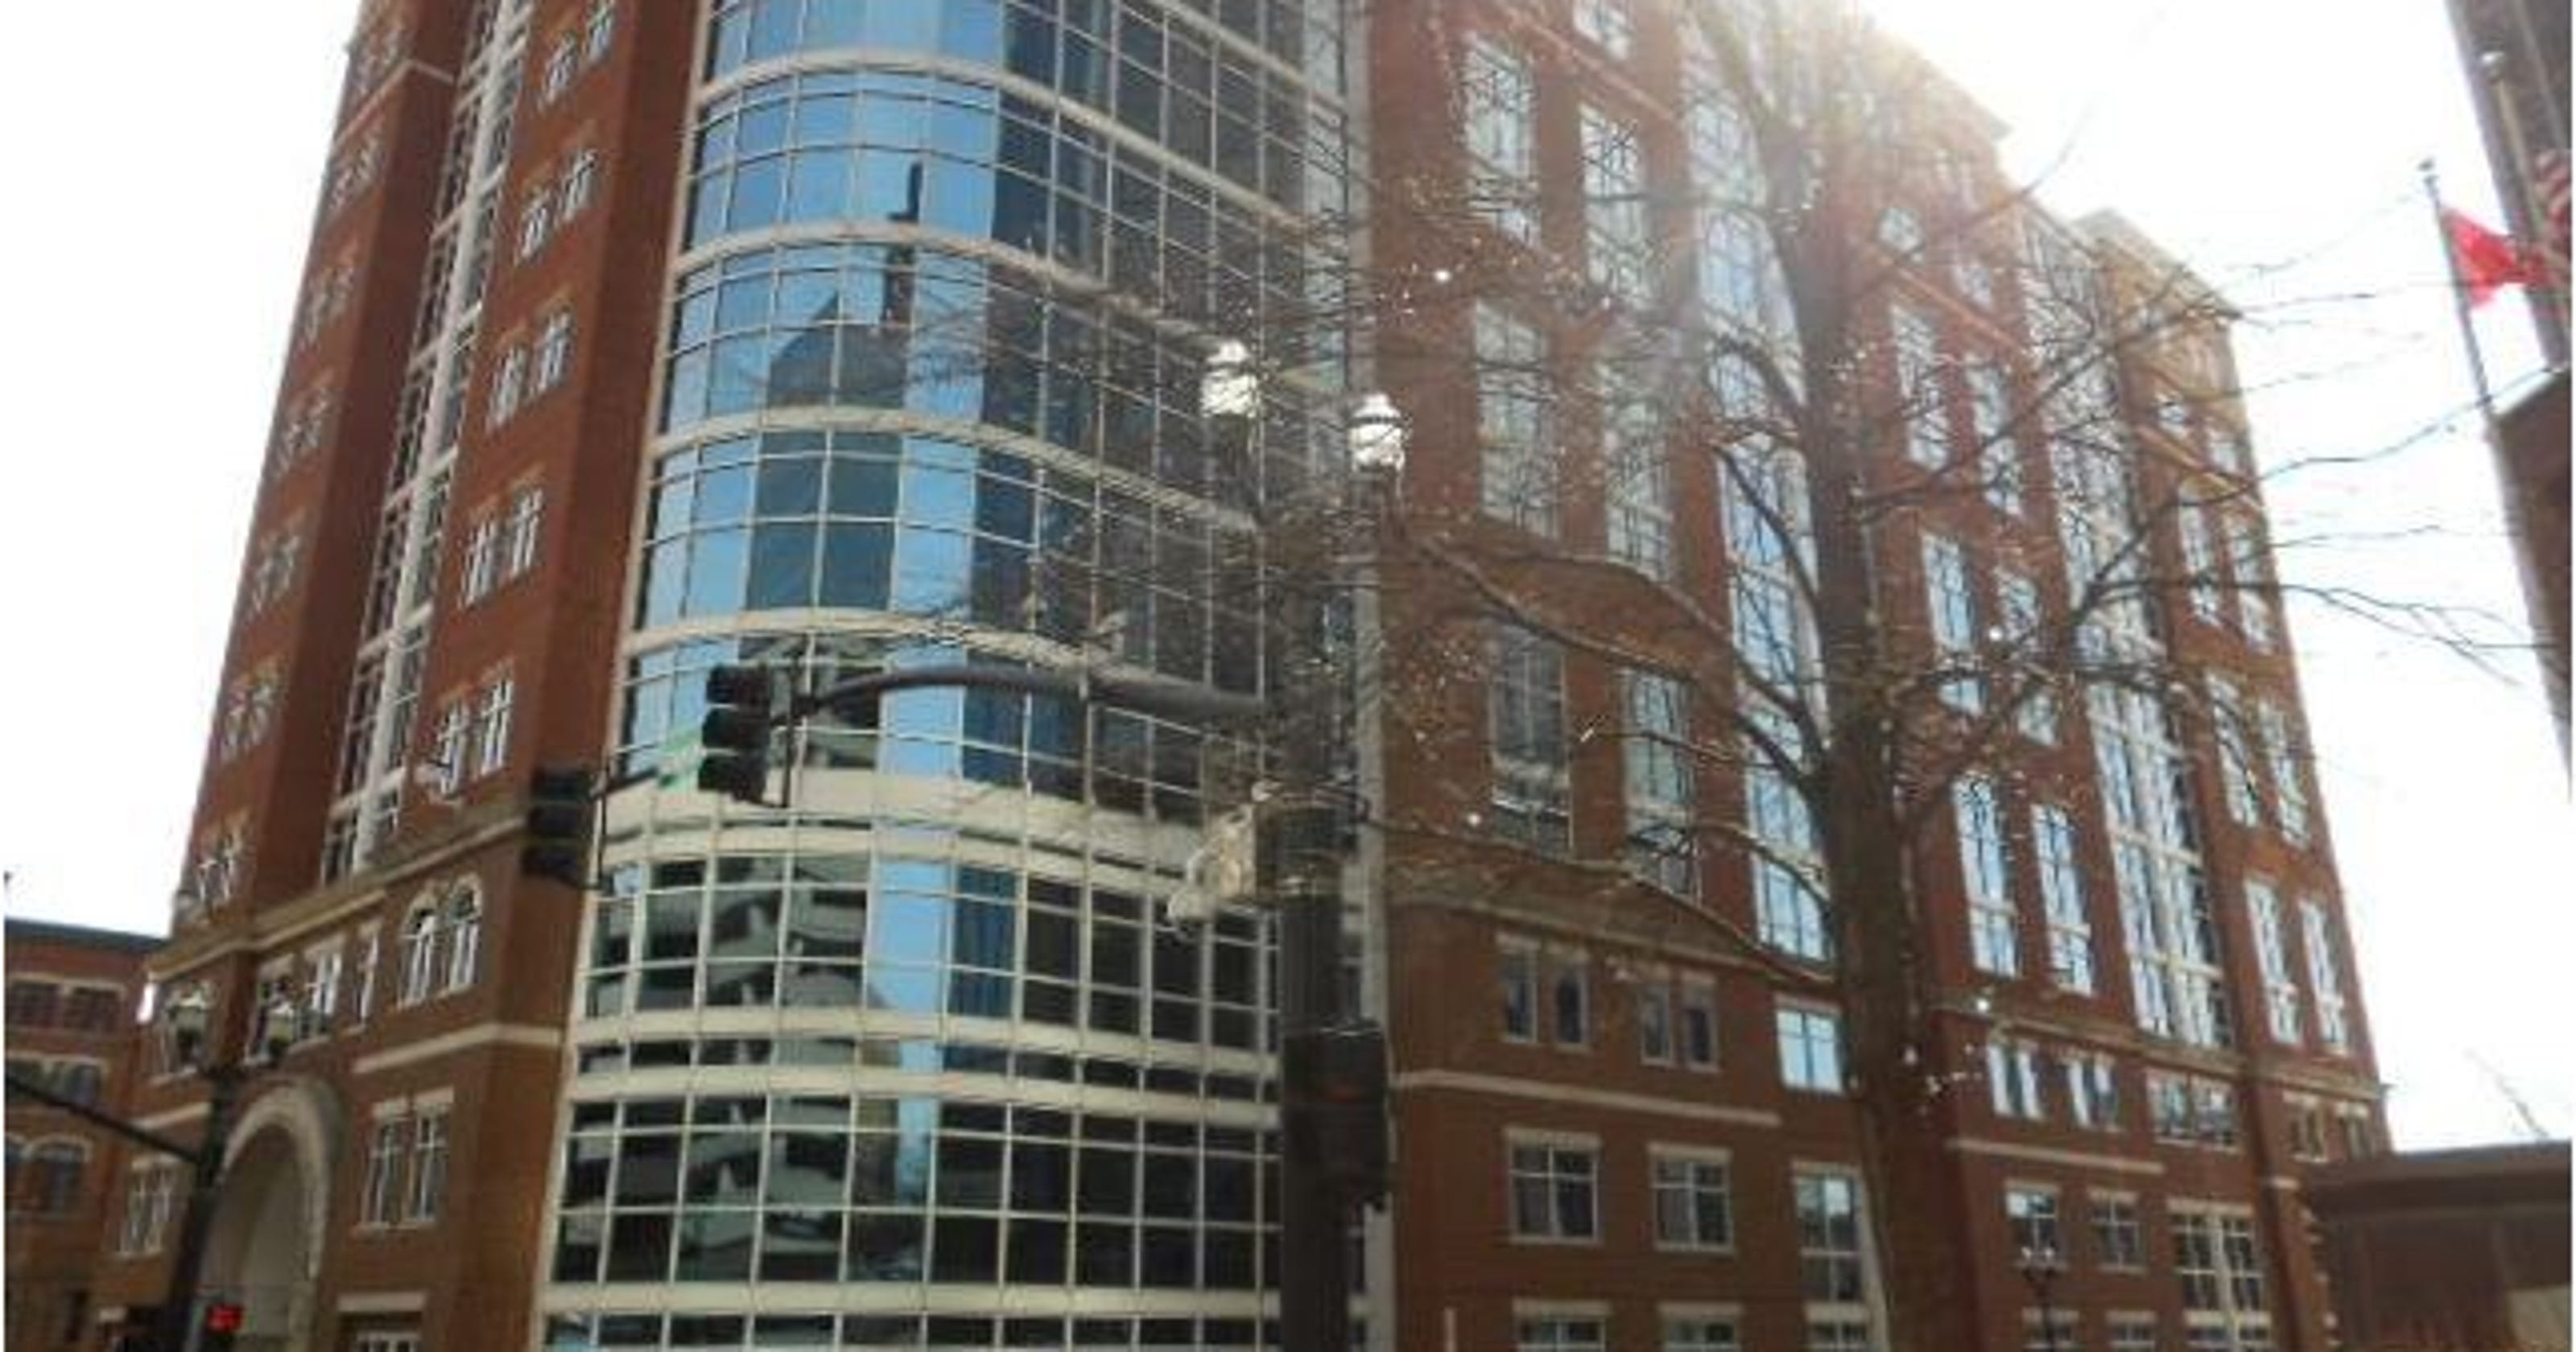 Law Firm Baker Donelson Could Leave Namesake Tower